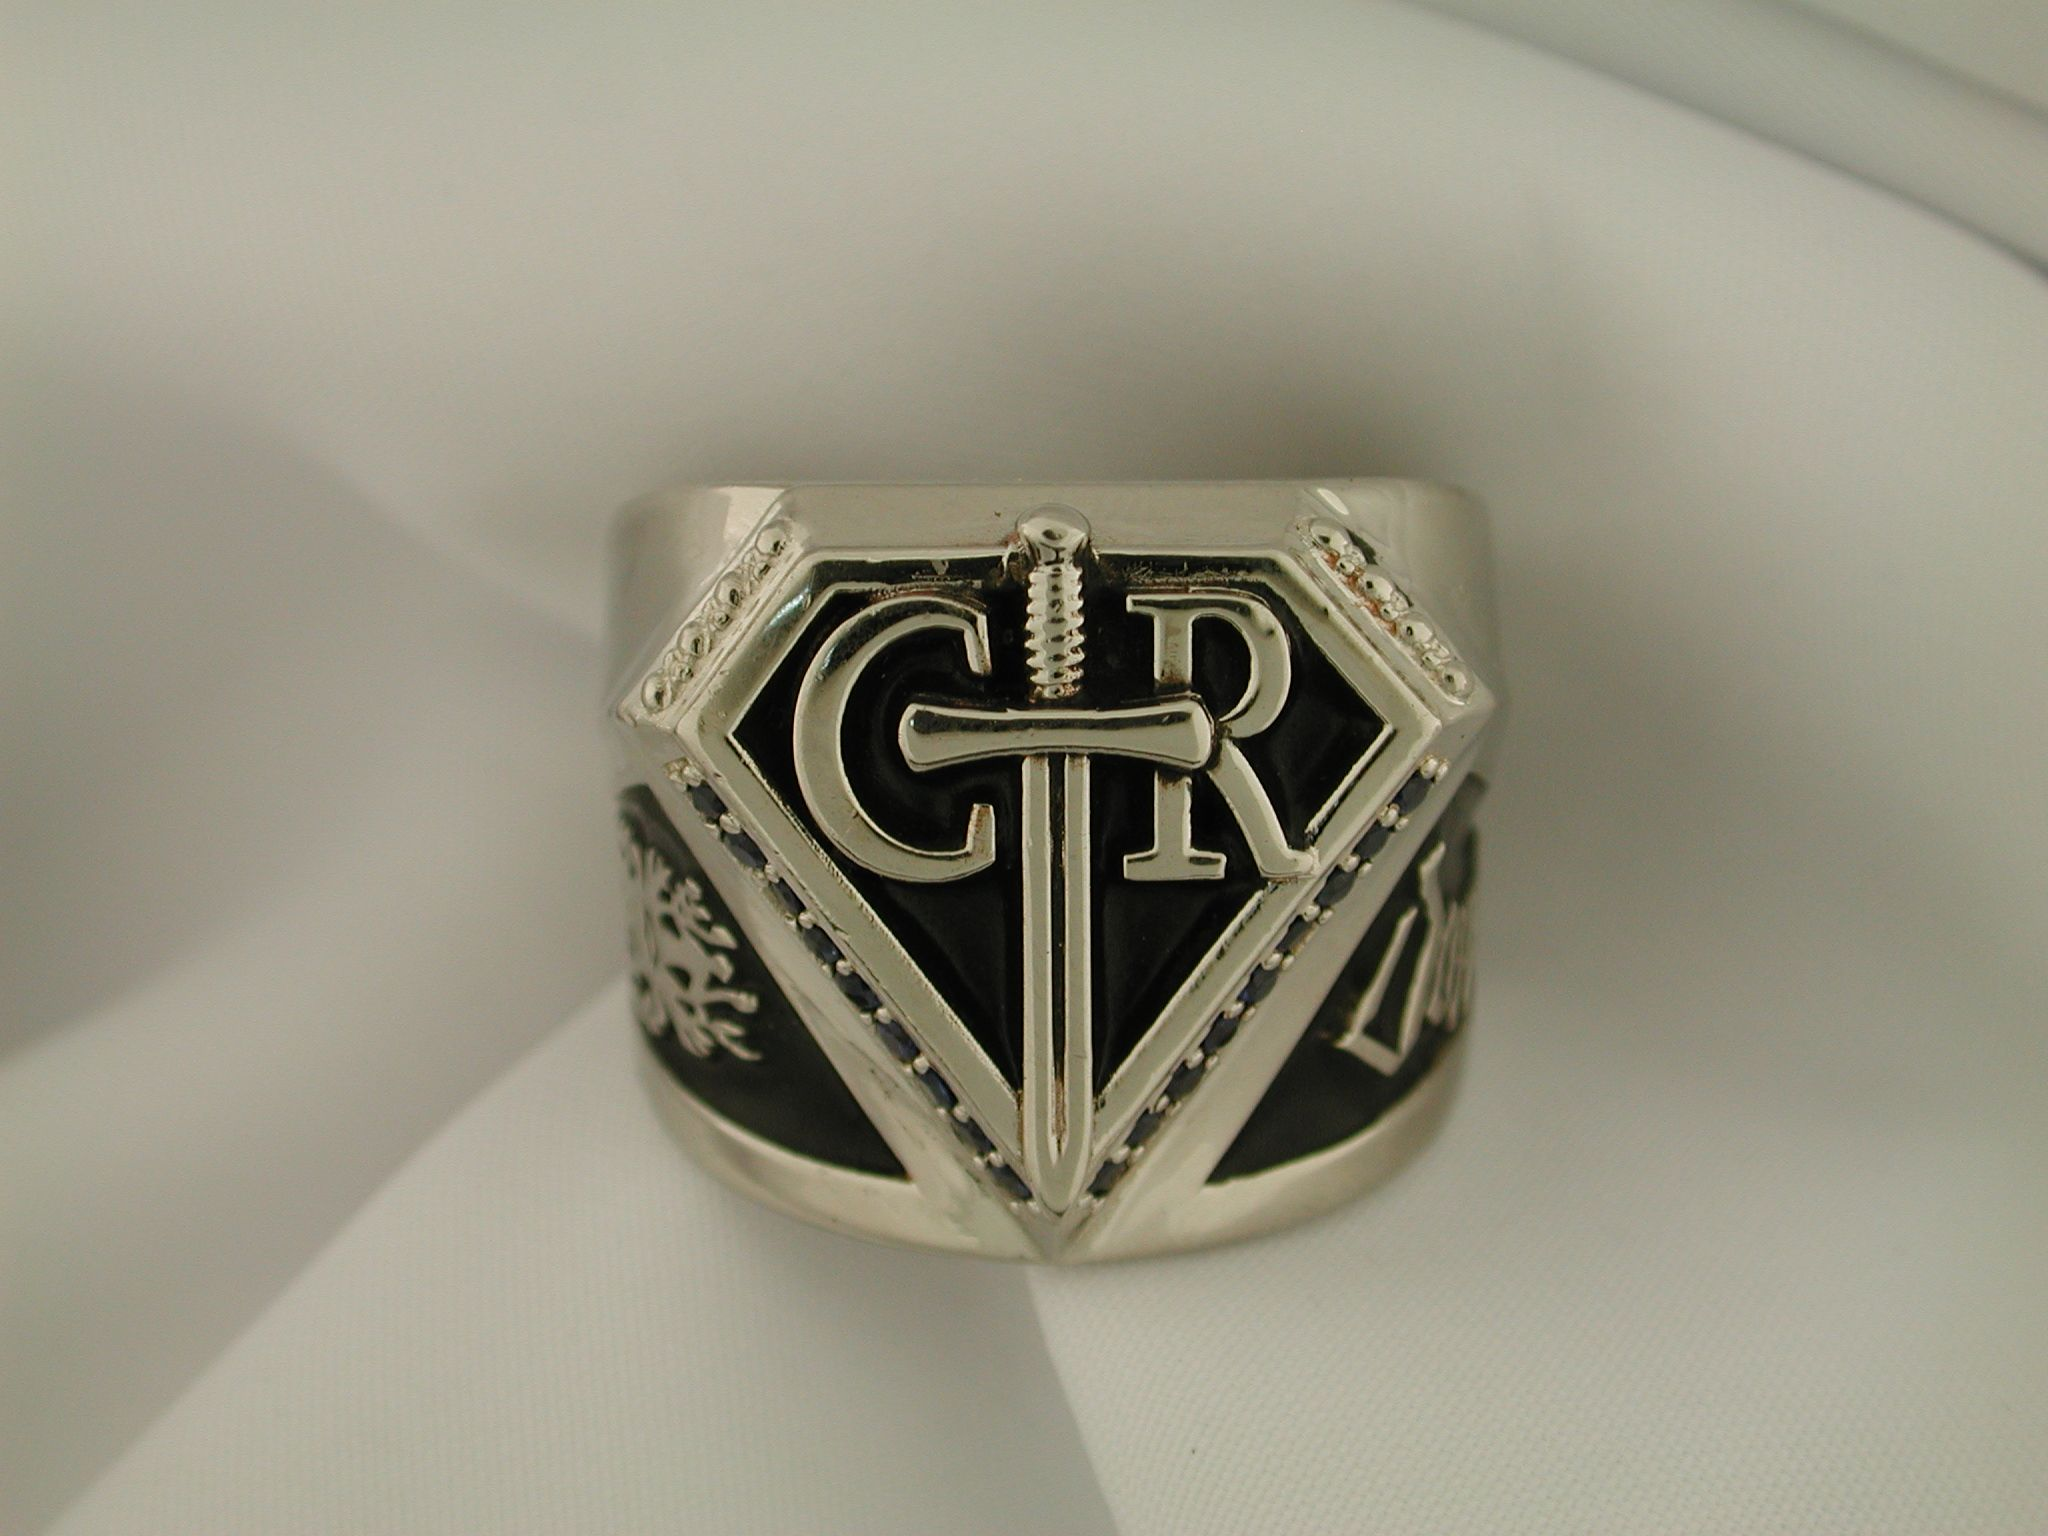 Find great deals on eBay for mens ctr ring. Shop with confidence.